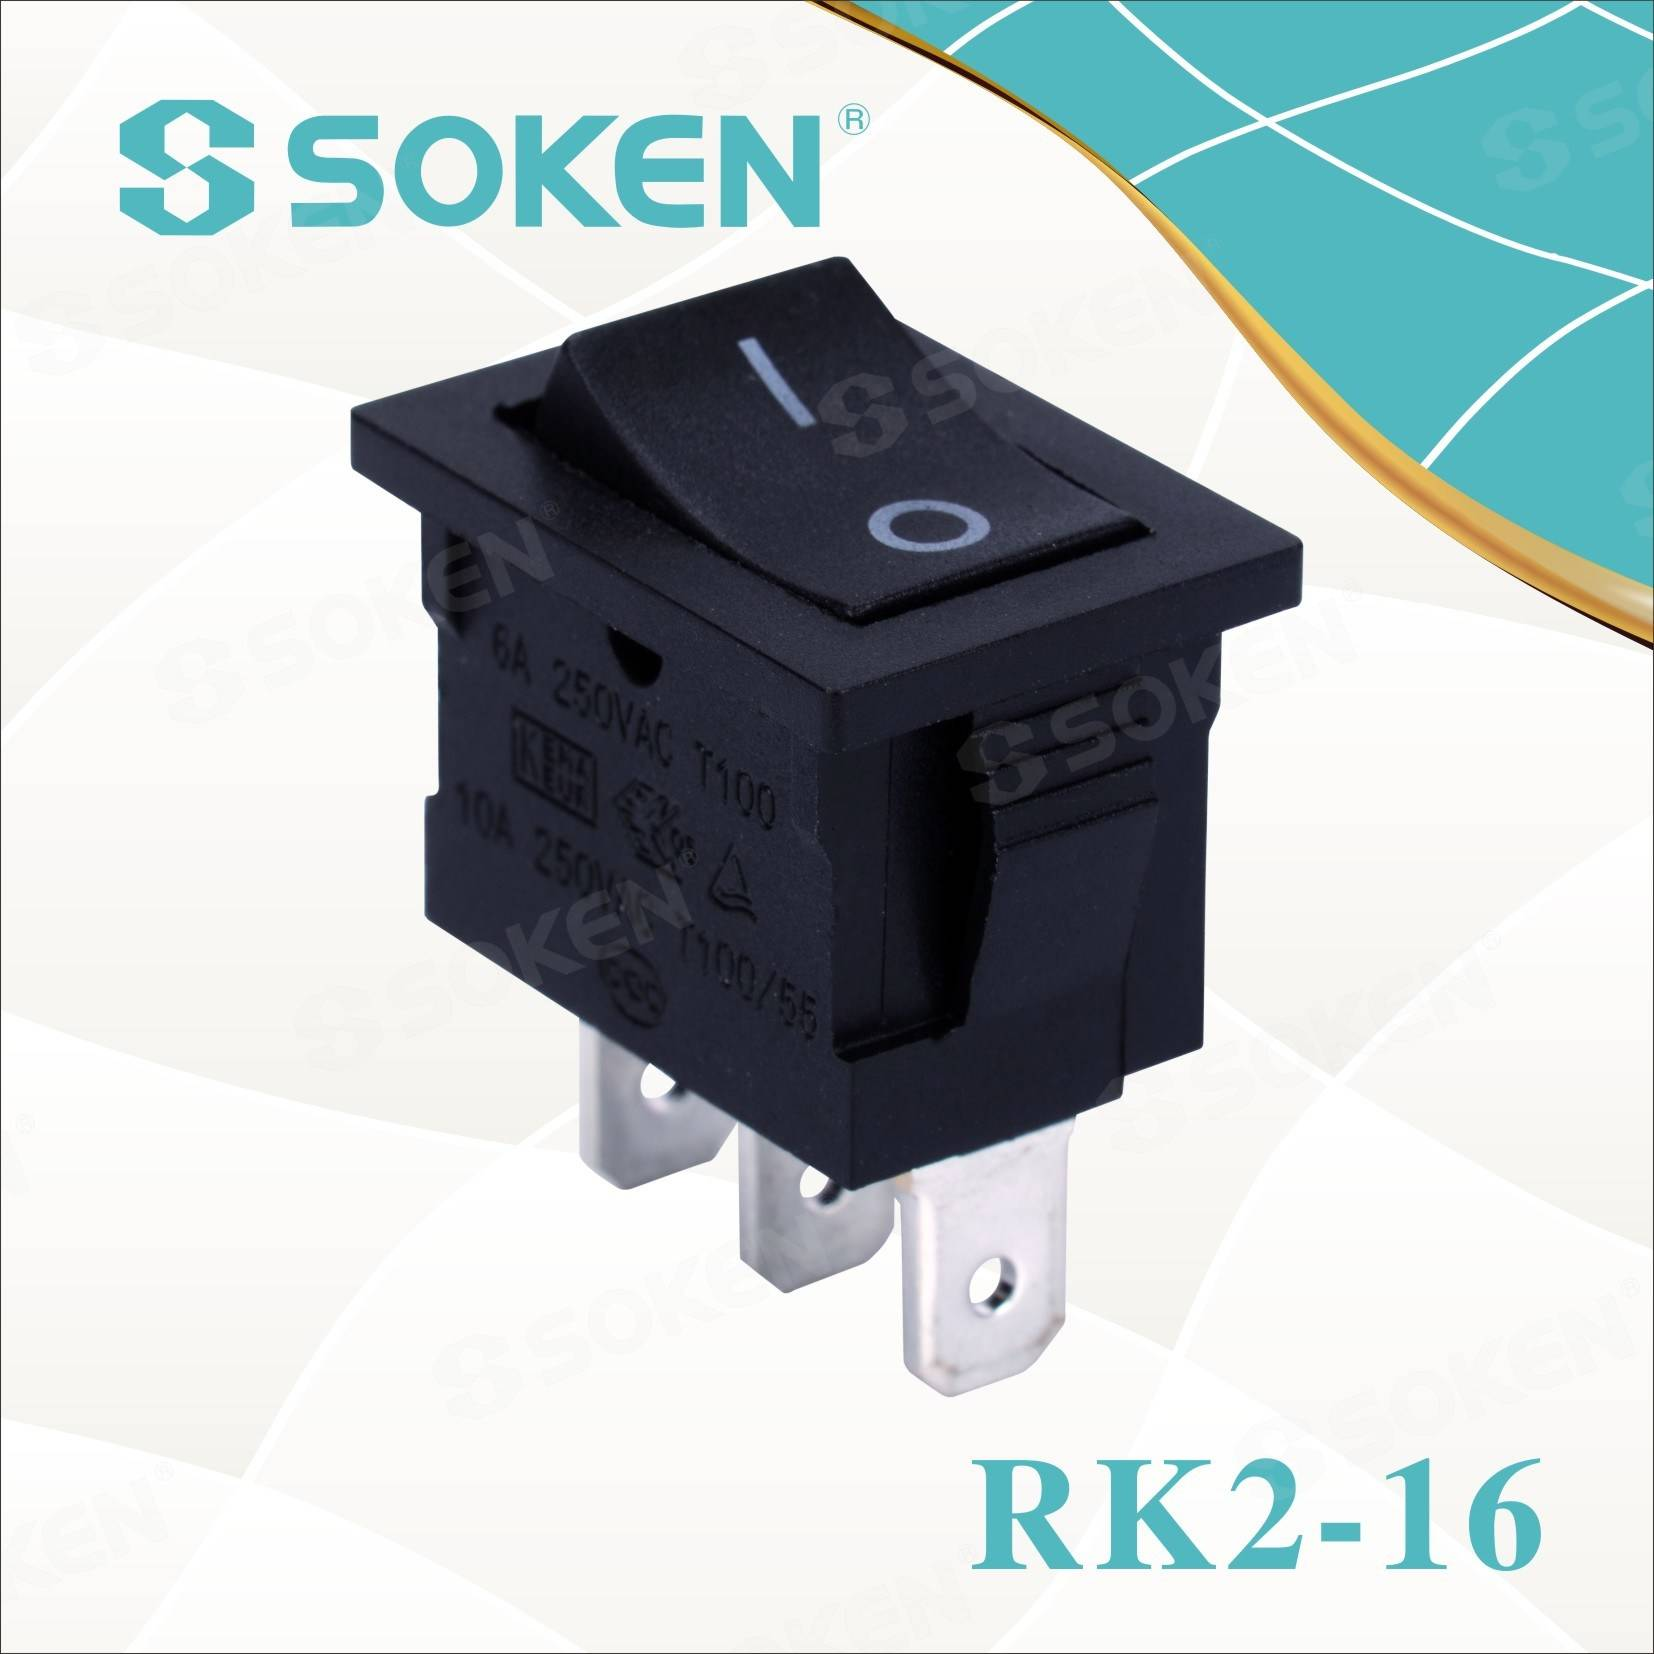 Quality Inspection for Electrical Rocker Switches -